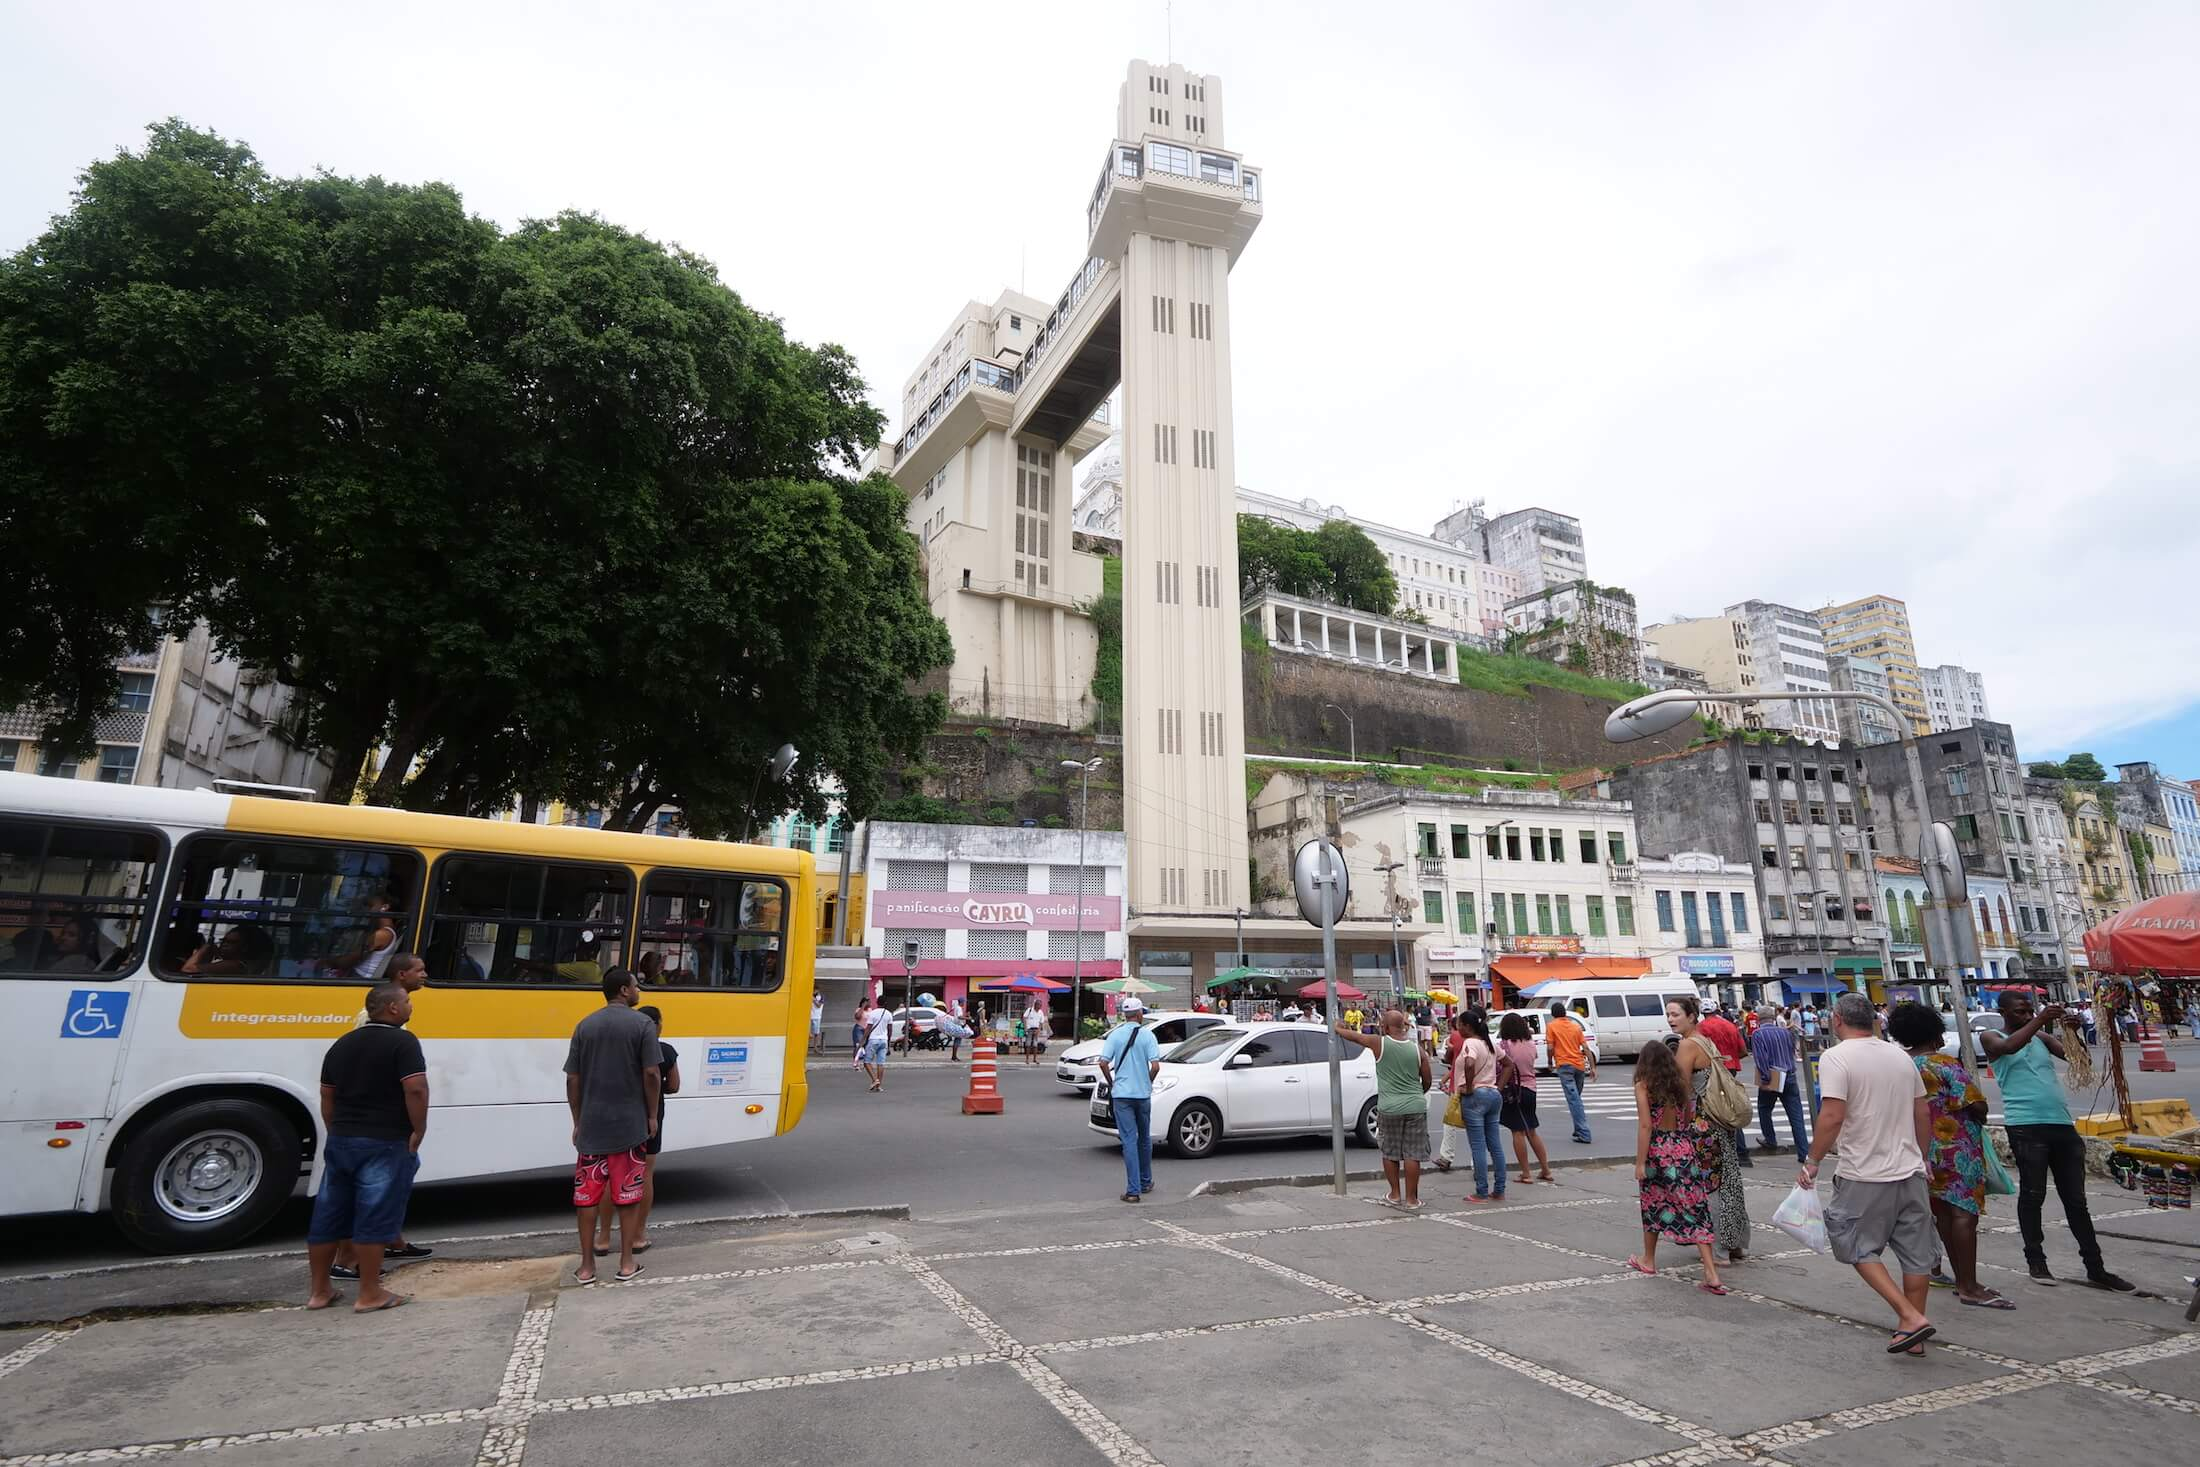 Take the elevator to reach the upper city section of Salvador